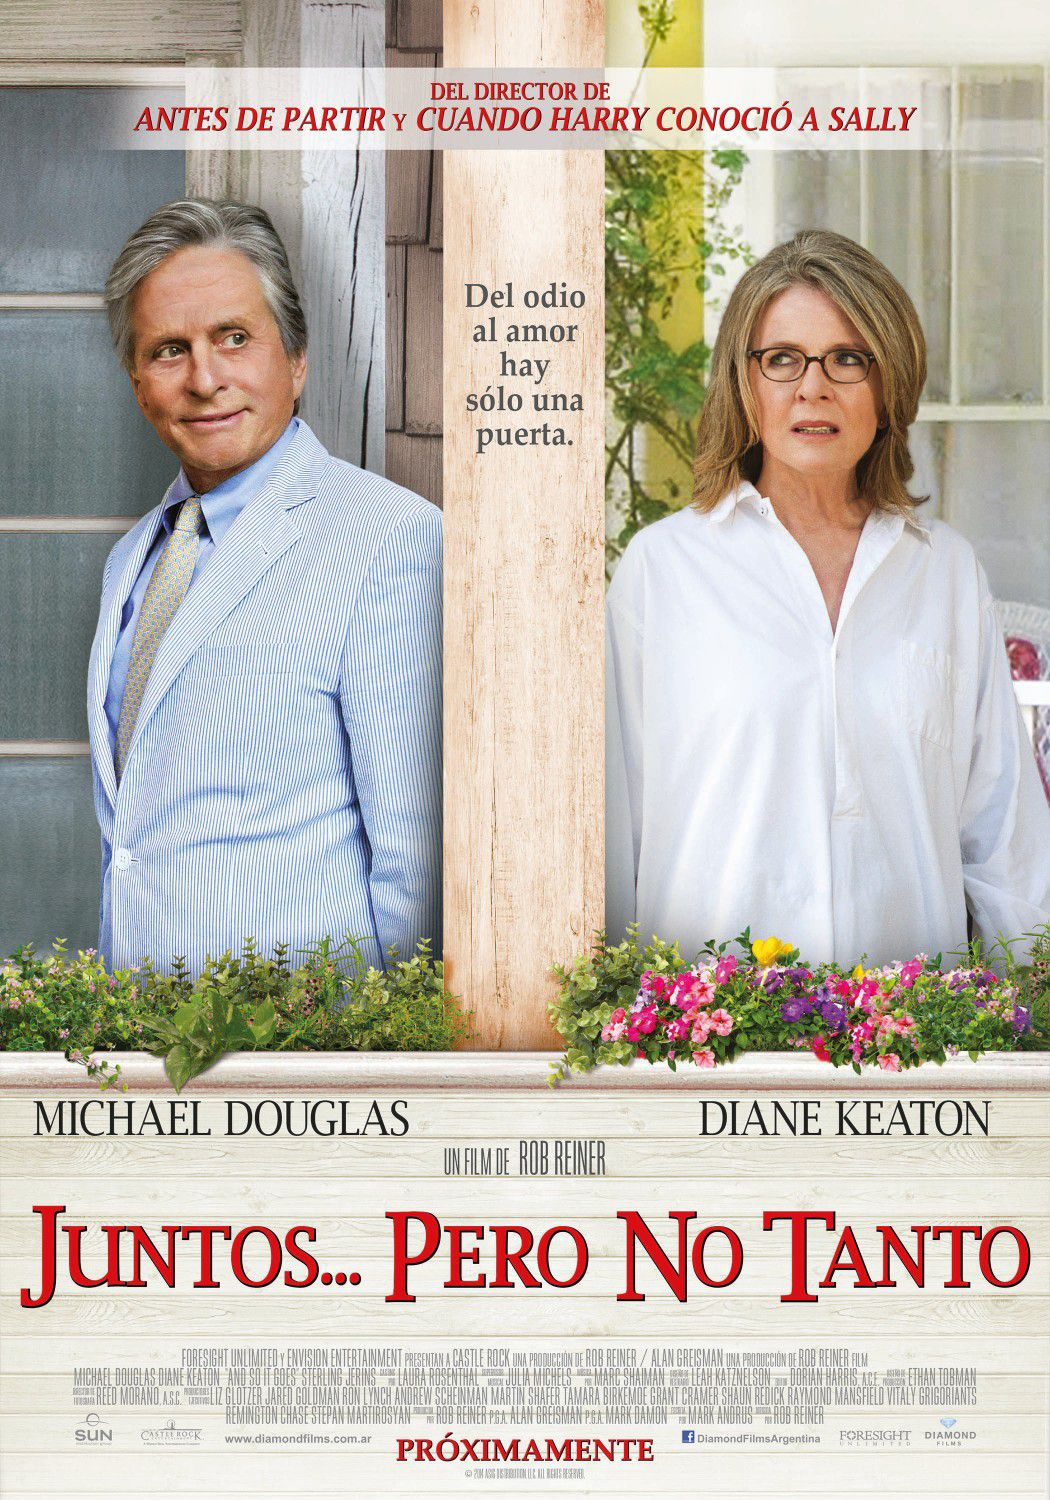 Juntos pero no Tanto - And so it goes - Romance - Diane Keaton - Michael Douglas - film poster